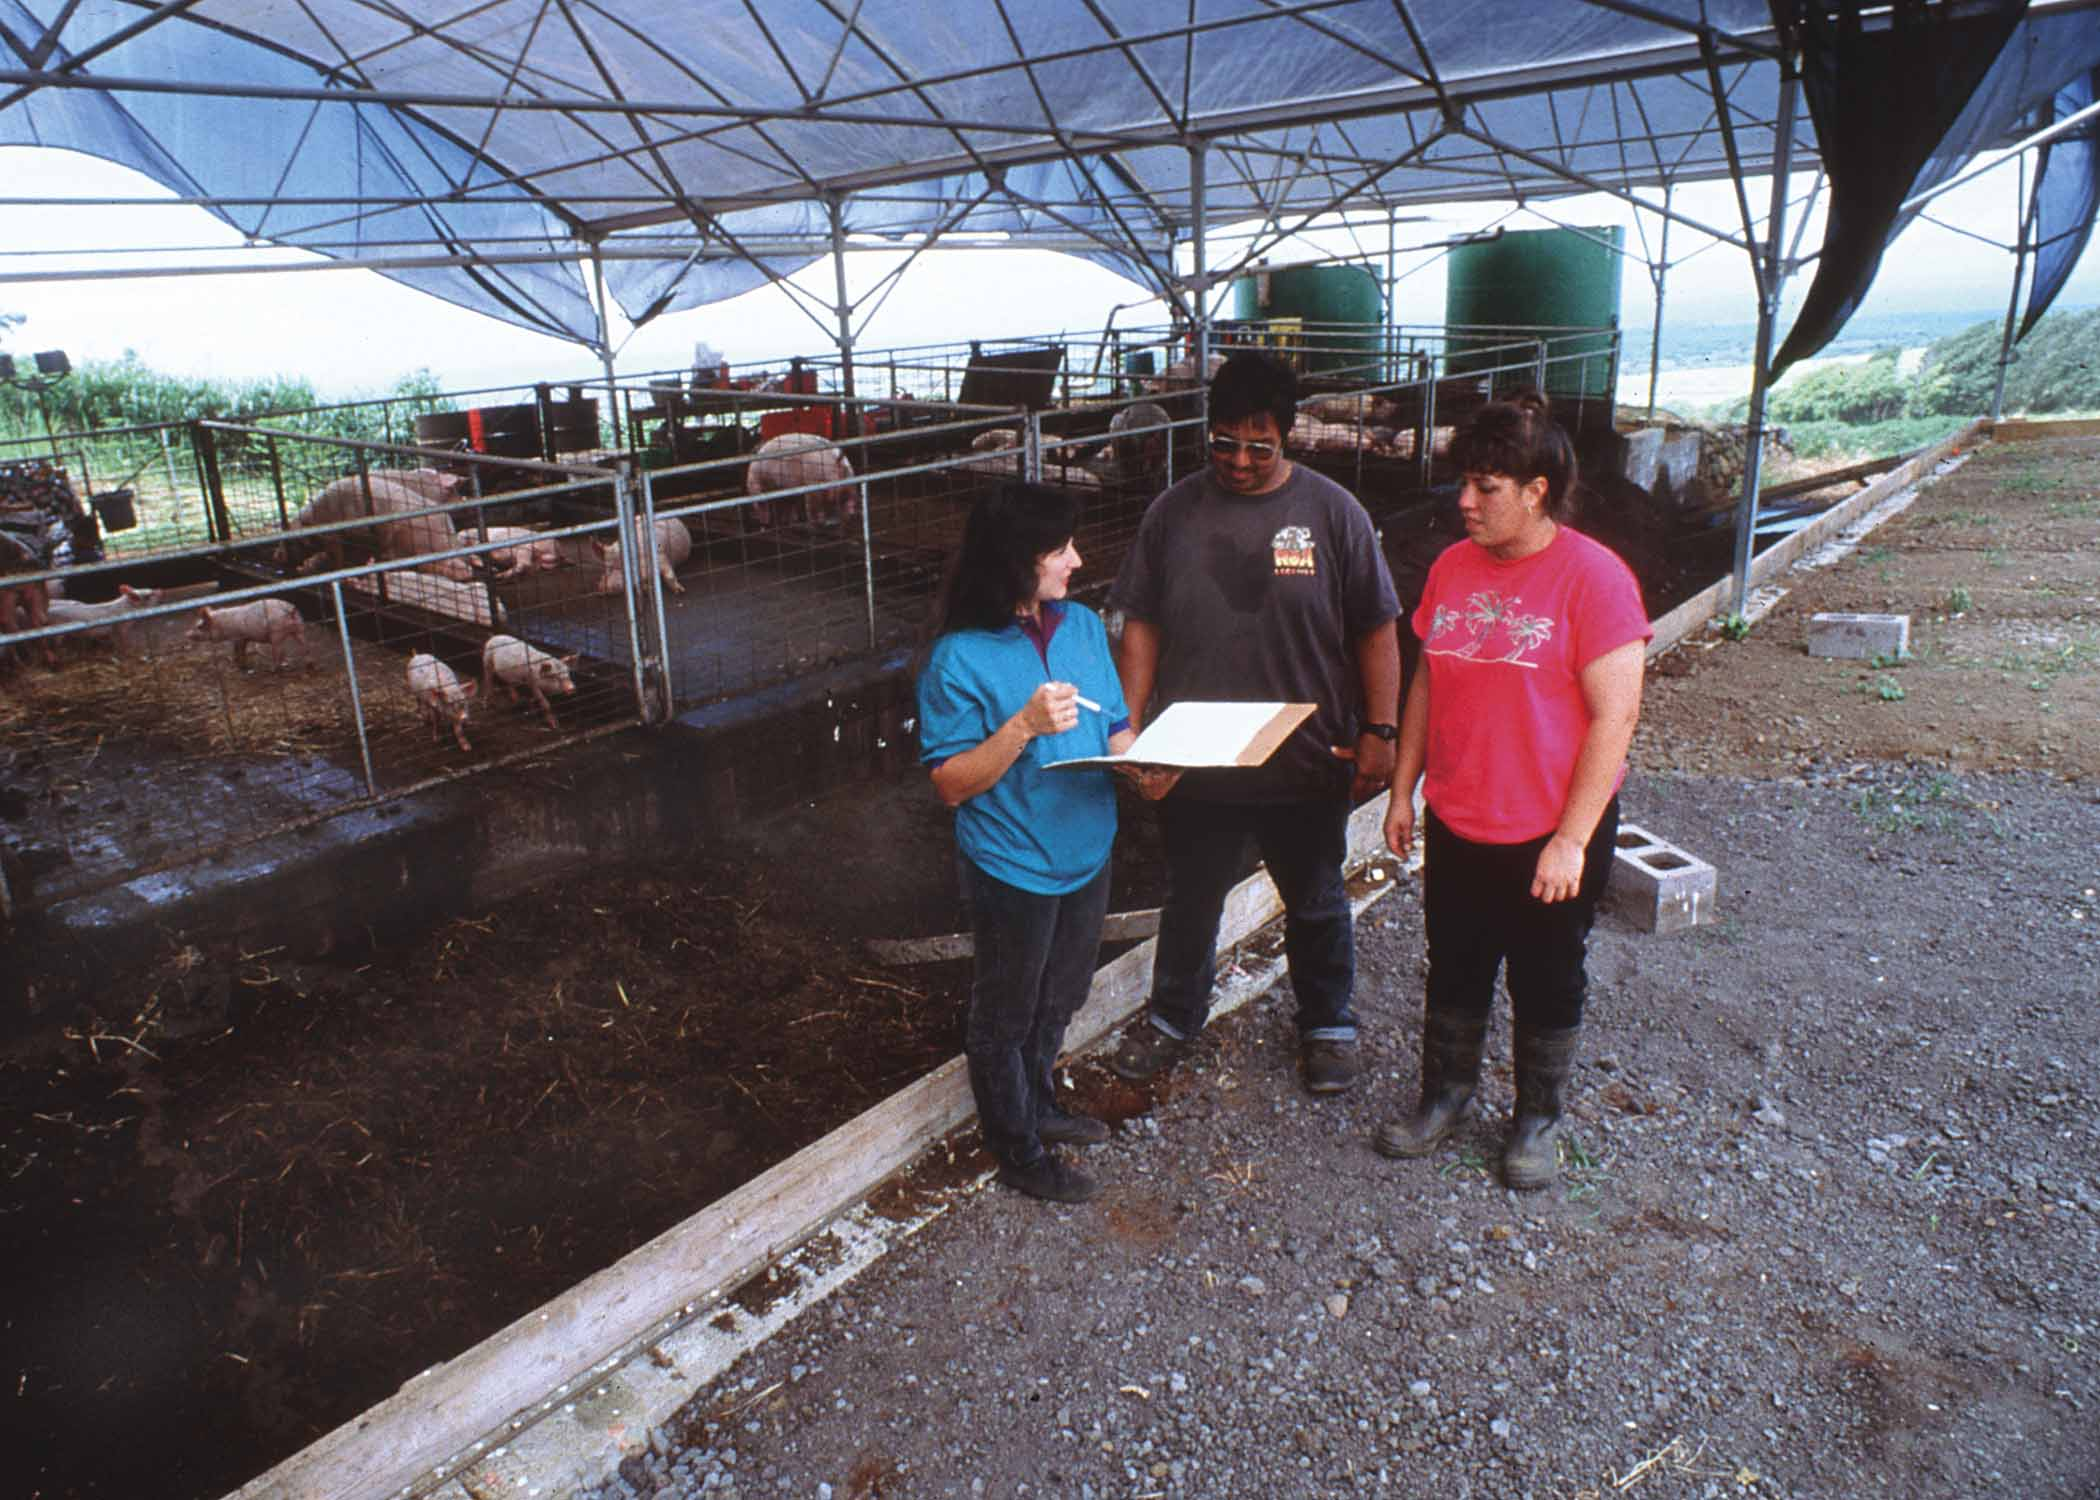 NRCS employee going over animal waste management with farm owner.